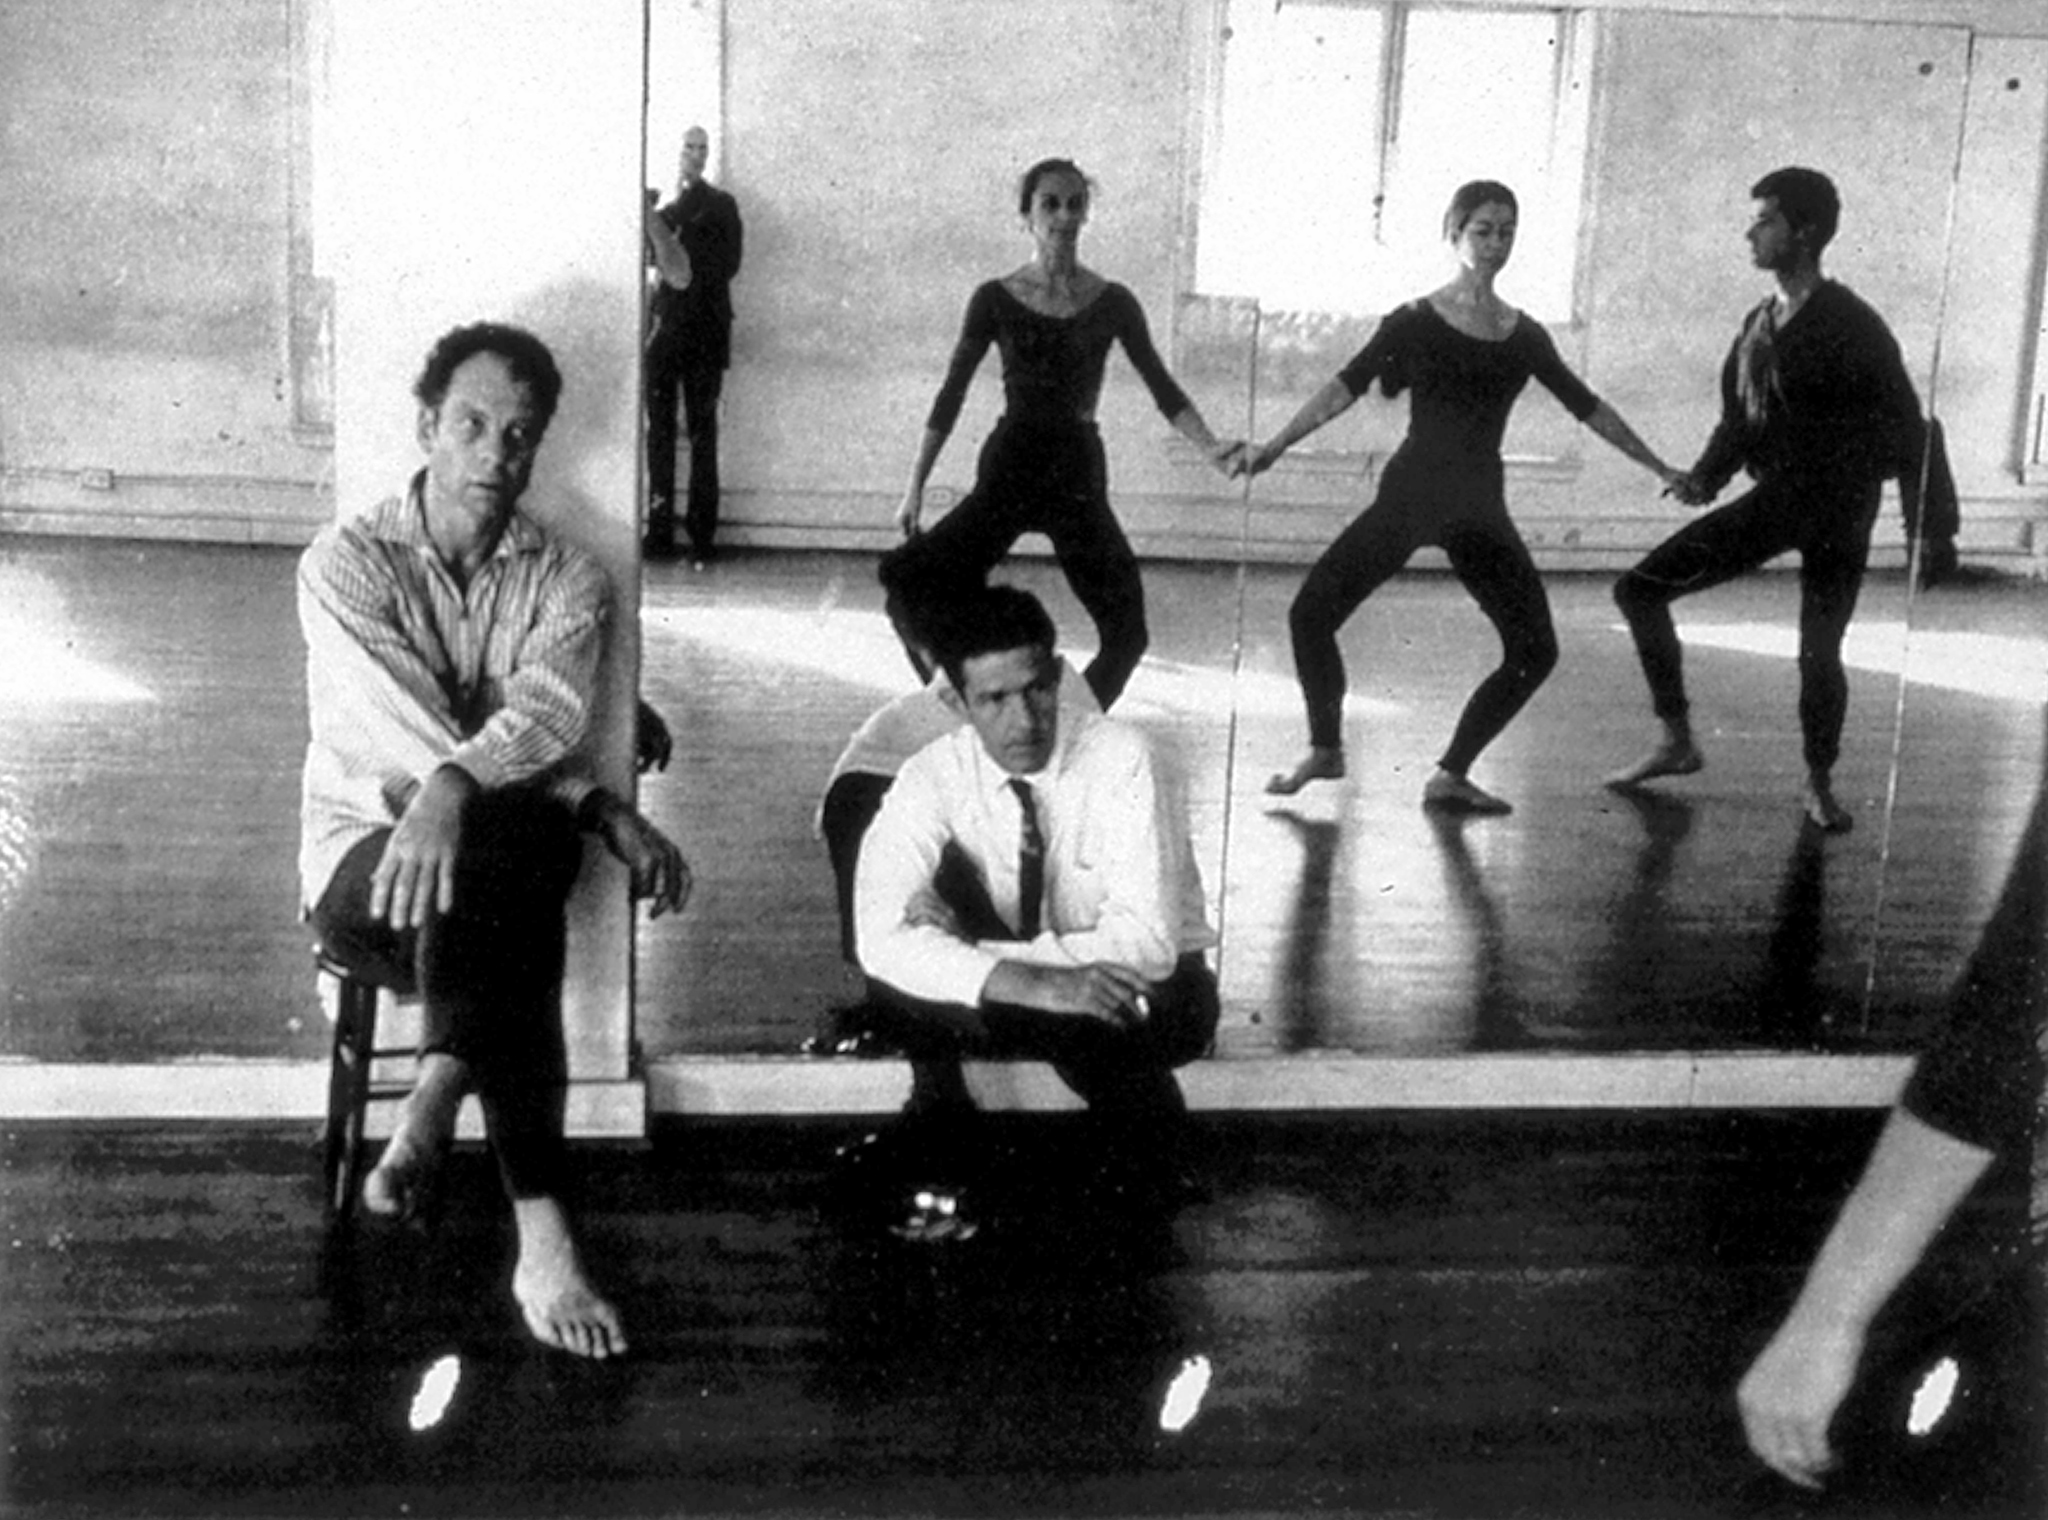 Robert Rauschenberg Merce Cunningham and John Cage observing Carolyn Brown, Viola Farber, and Steve Paxton in class, Third Avenue studio, New York City, circa 196, Robert Rauschenberg Foundation Archives ©Robert Rauschenberg Foundation